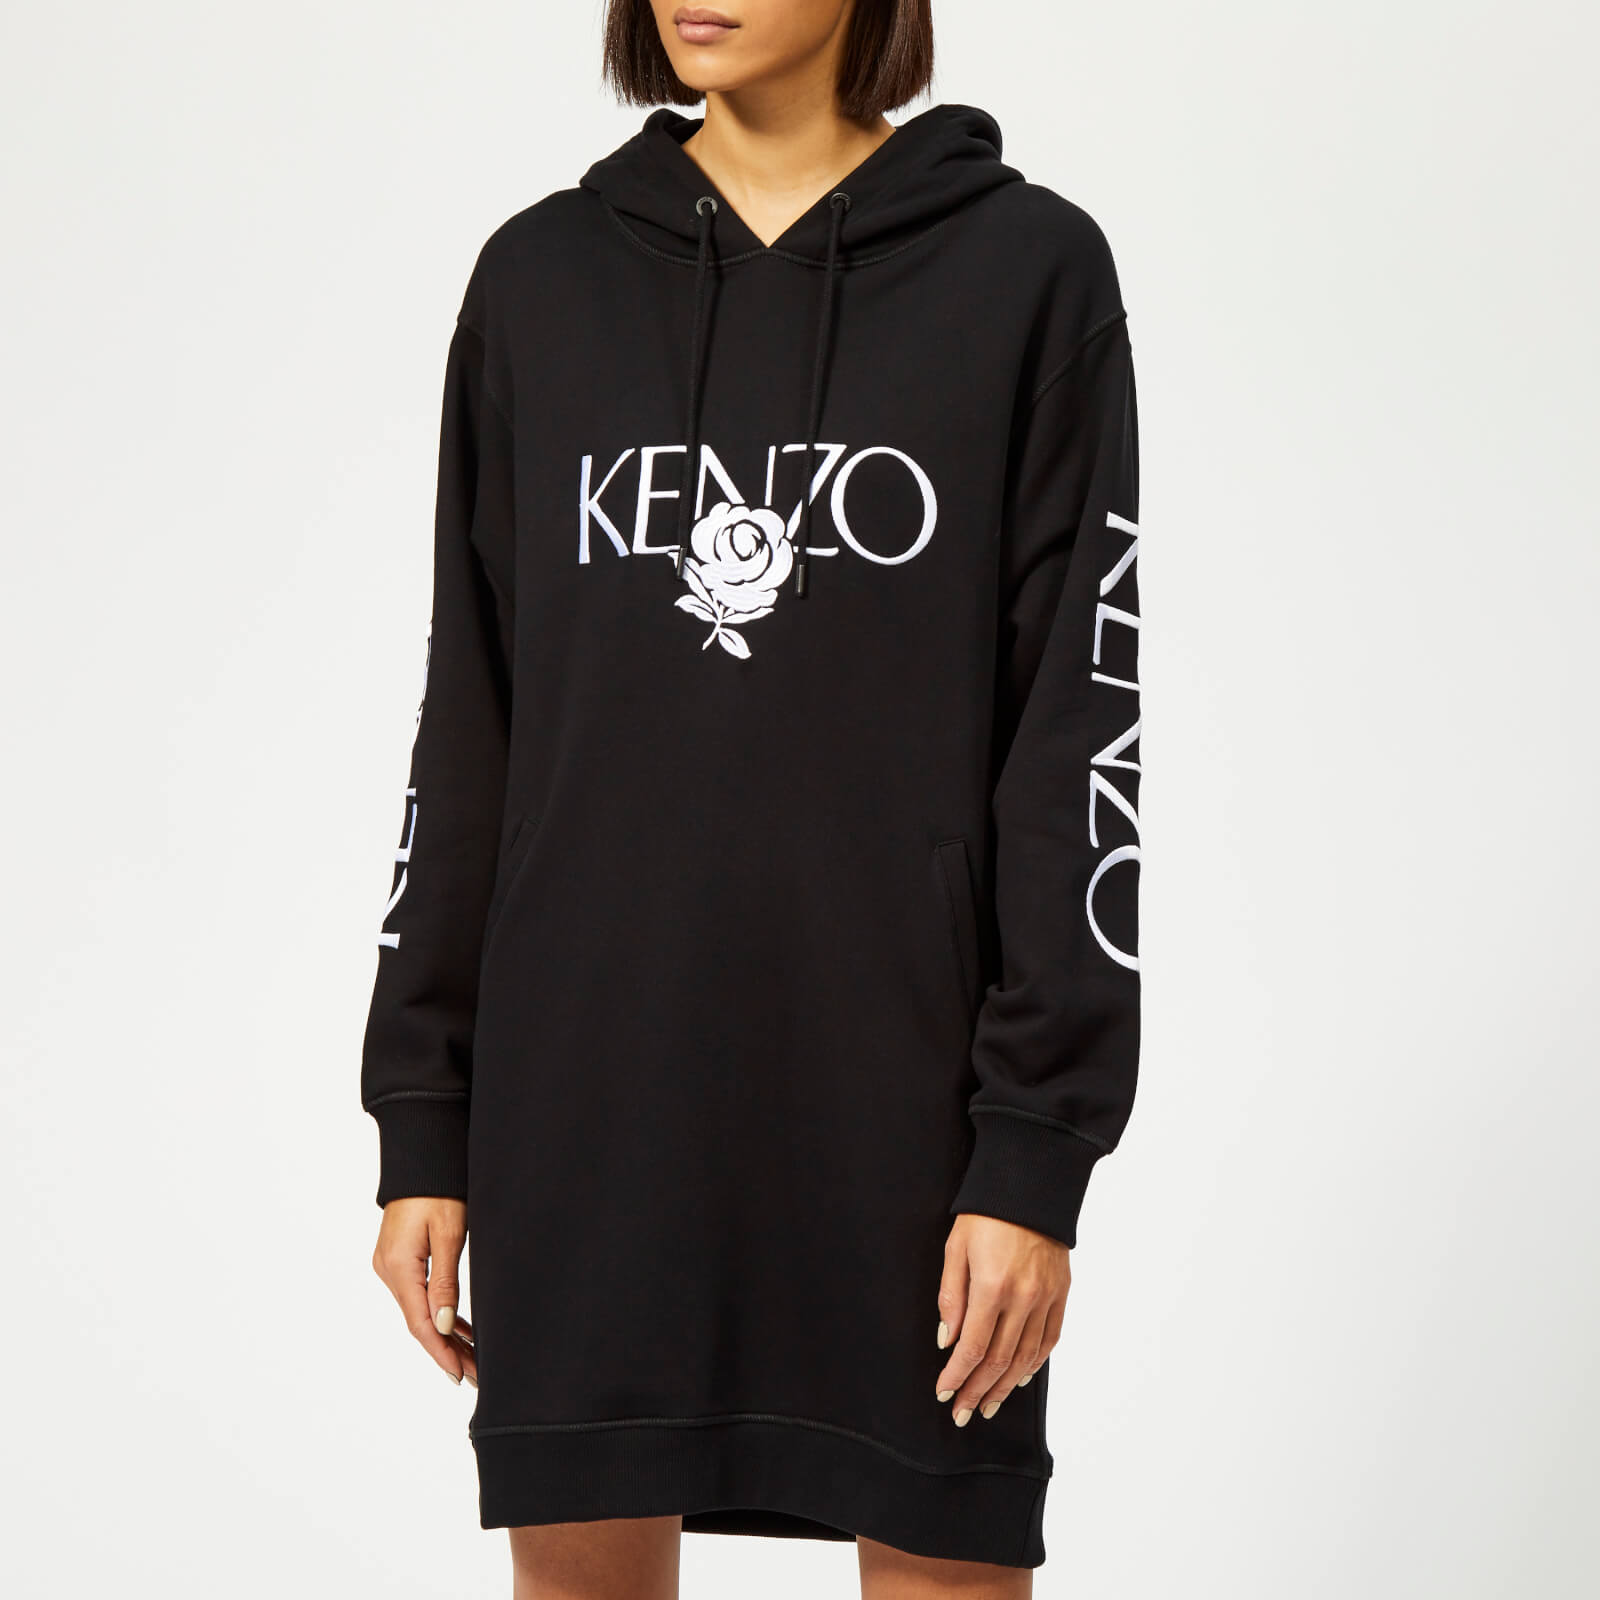 270b9e264 KENZO Women's Logo Hooded Sweatshirt Dress - Black - Free UK Delivery over  £50